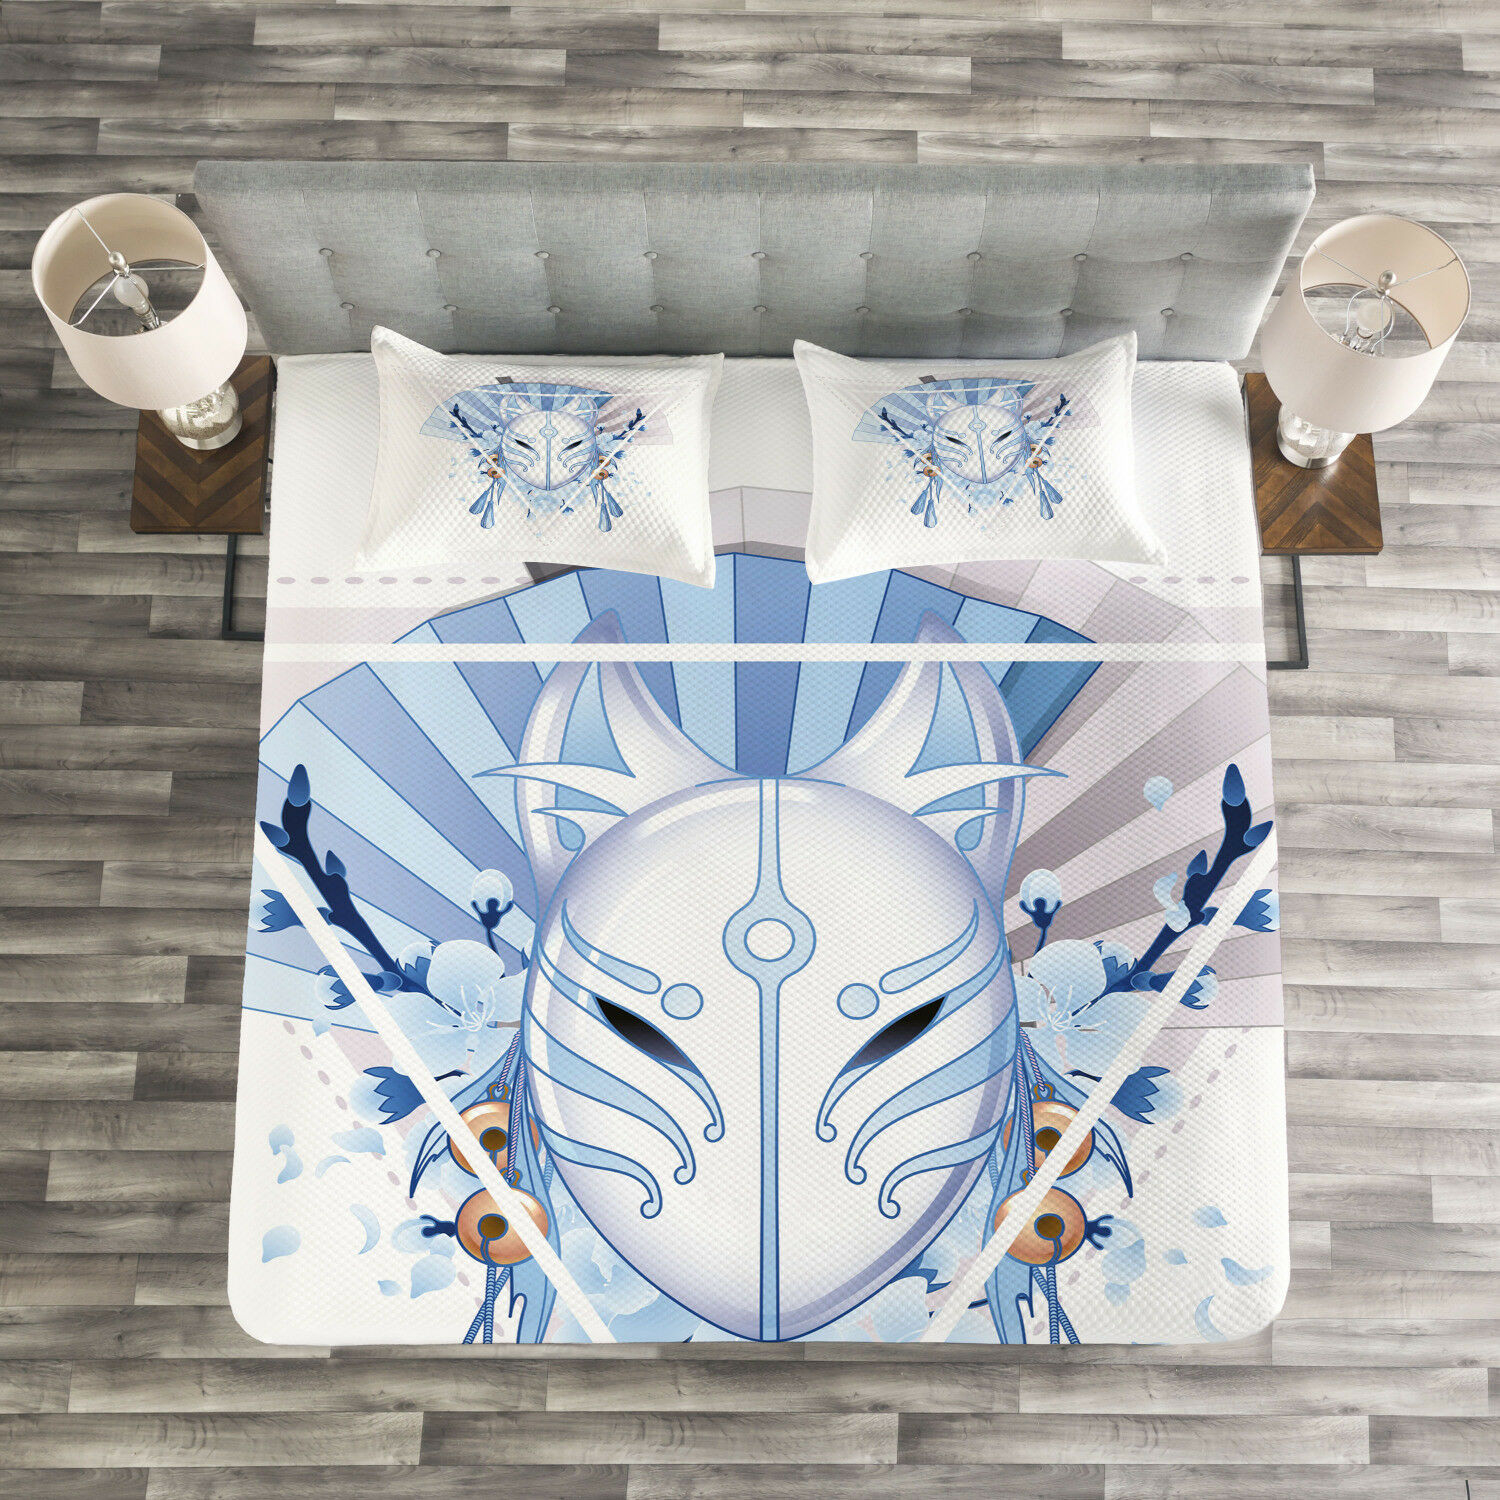 Kabuki Mask Quilted Bedspread & Pillow Shams Set, Fox Mask Kitsune Print